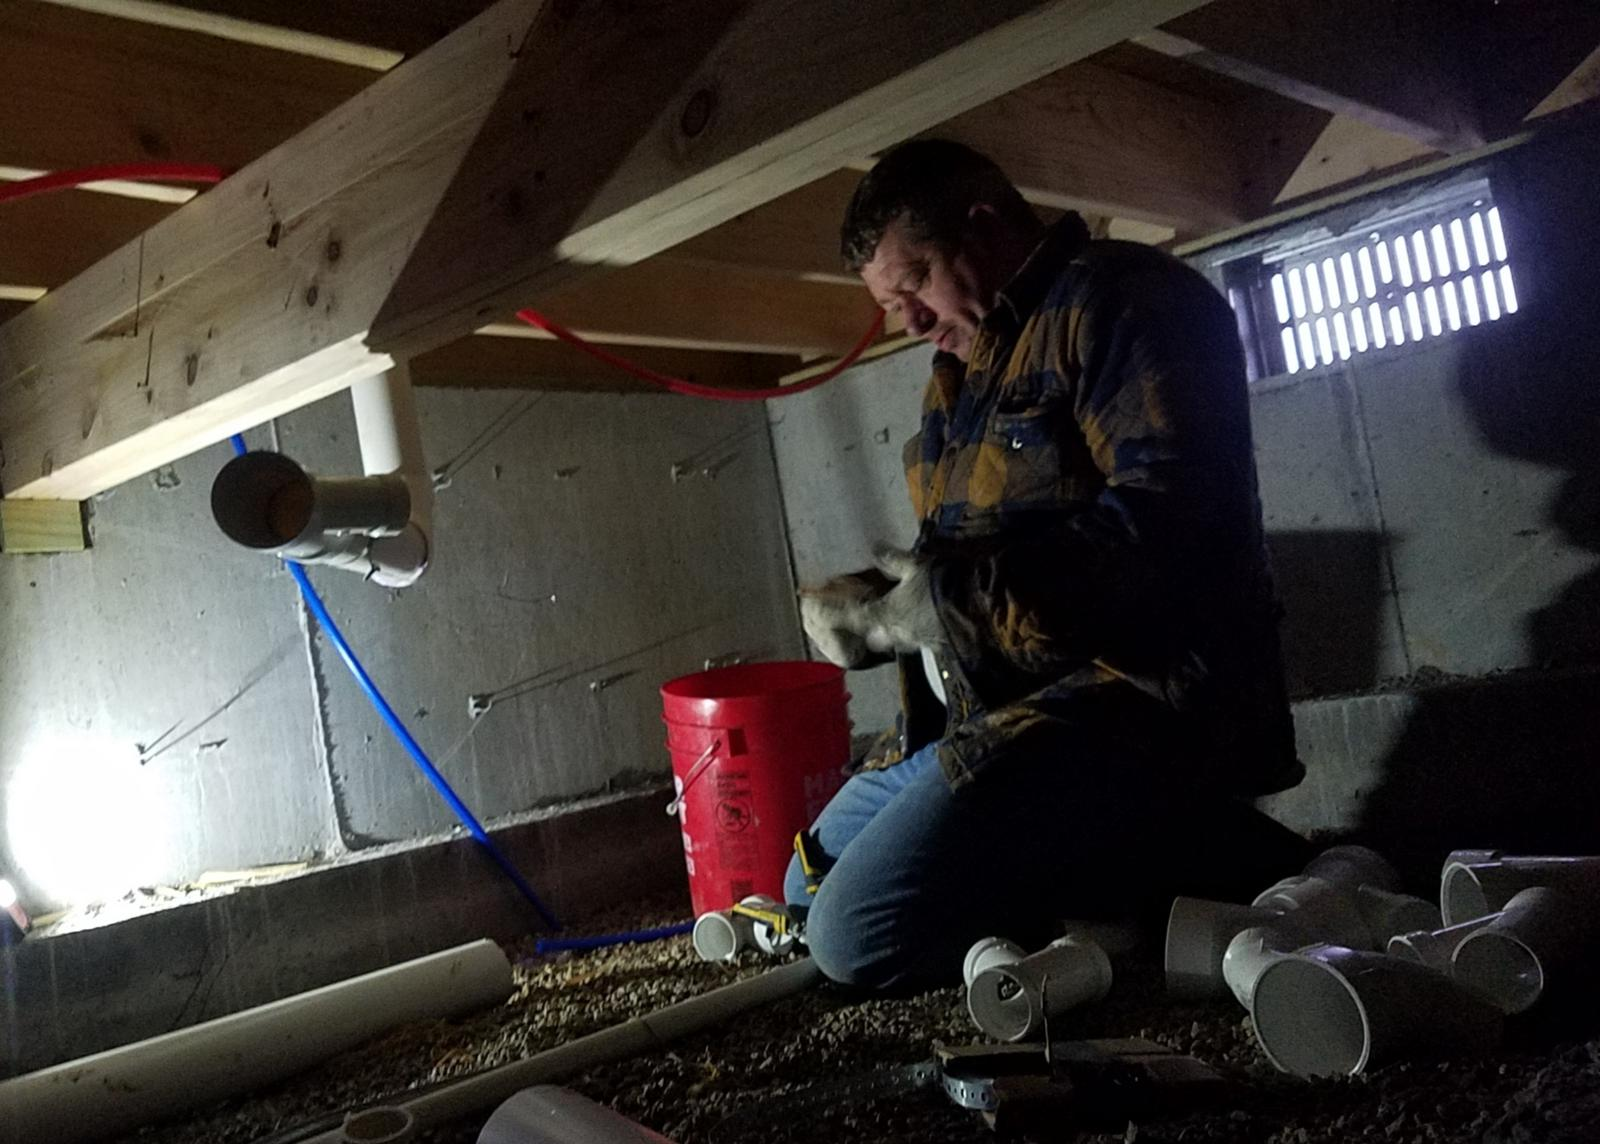 This is Randy building new drain lines (roughing-in)under a new house. He truly is a master of his craft!